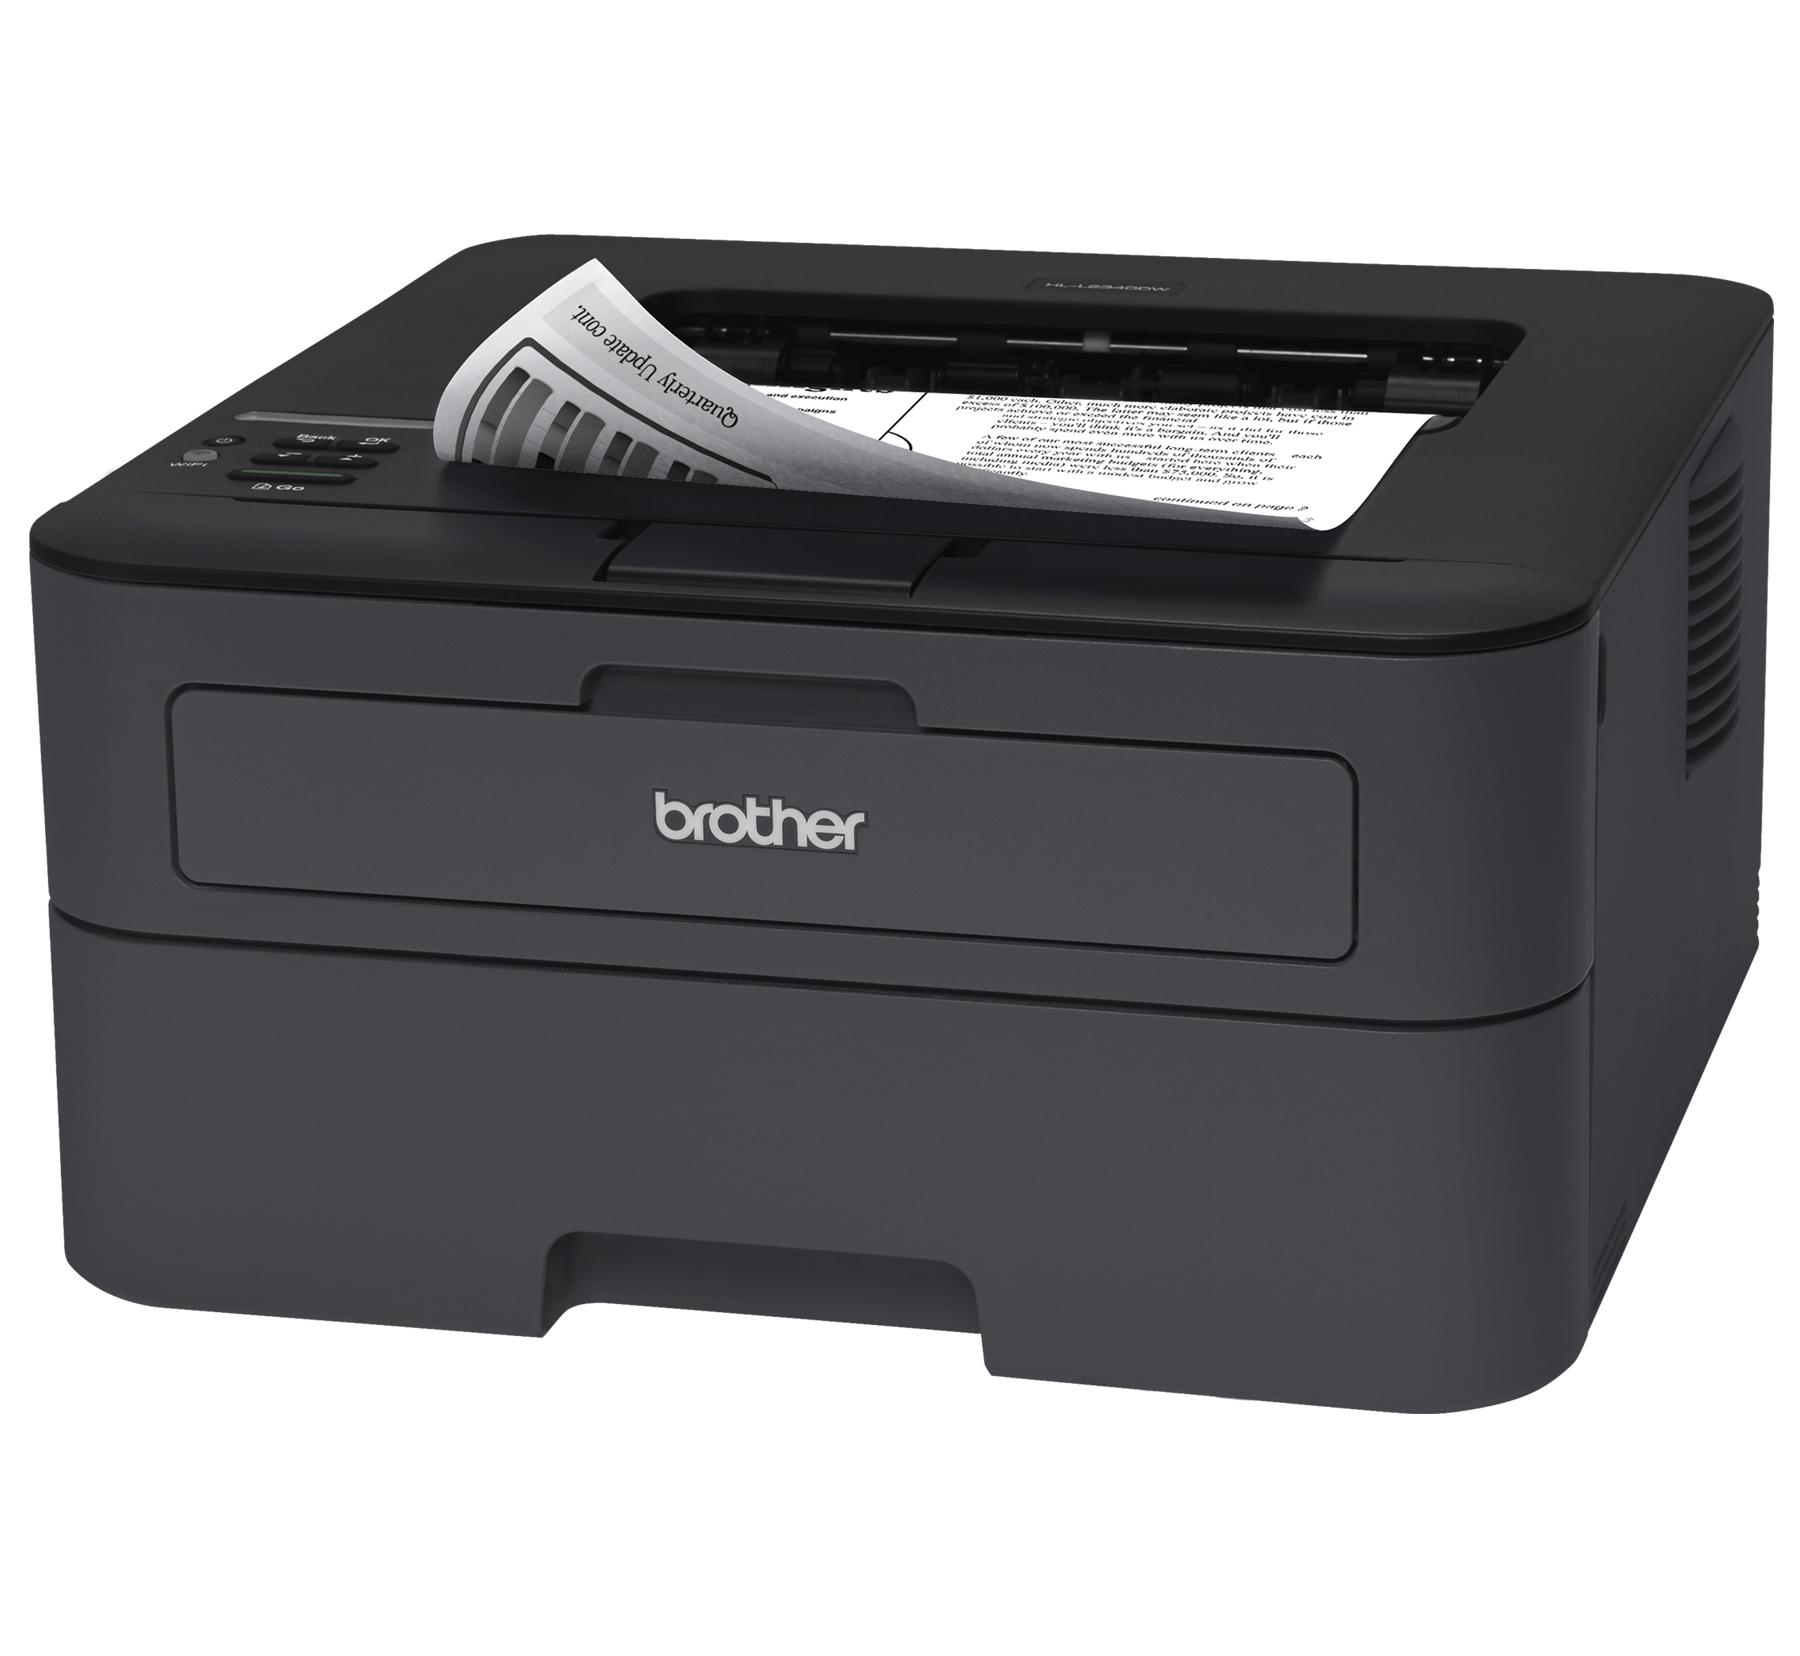 Brother HL-L2340DW (26str.,2400x600dpi,32MB,GDI, duplex, USB 2.0) Wifi